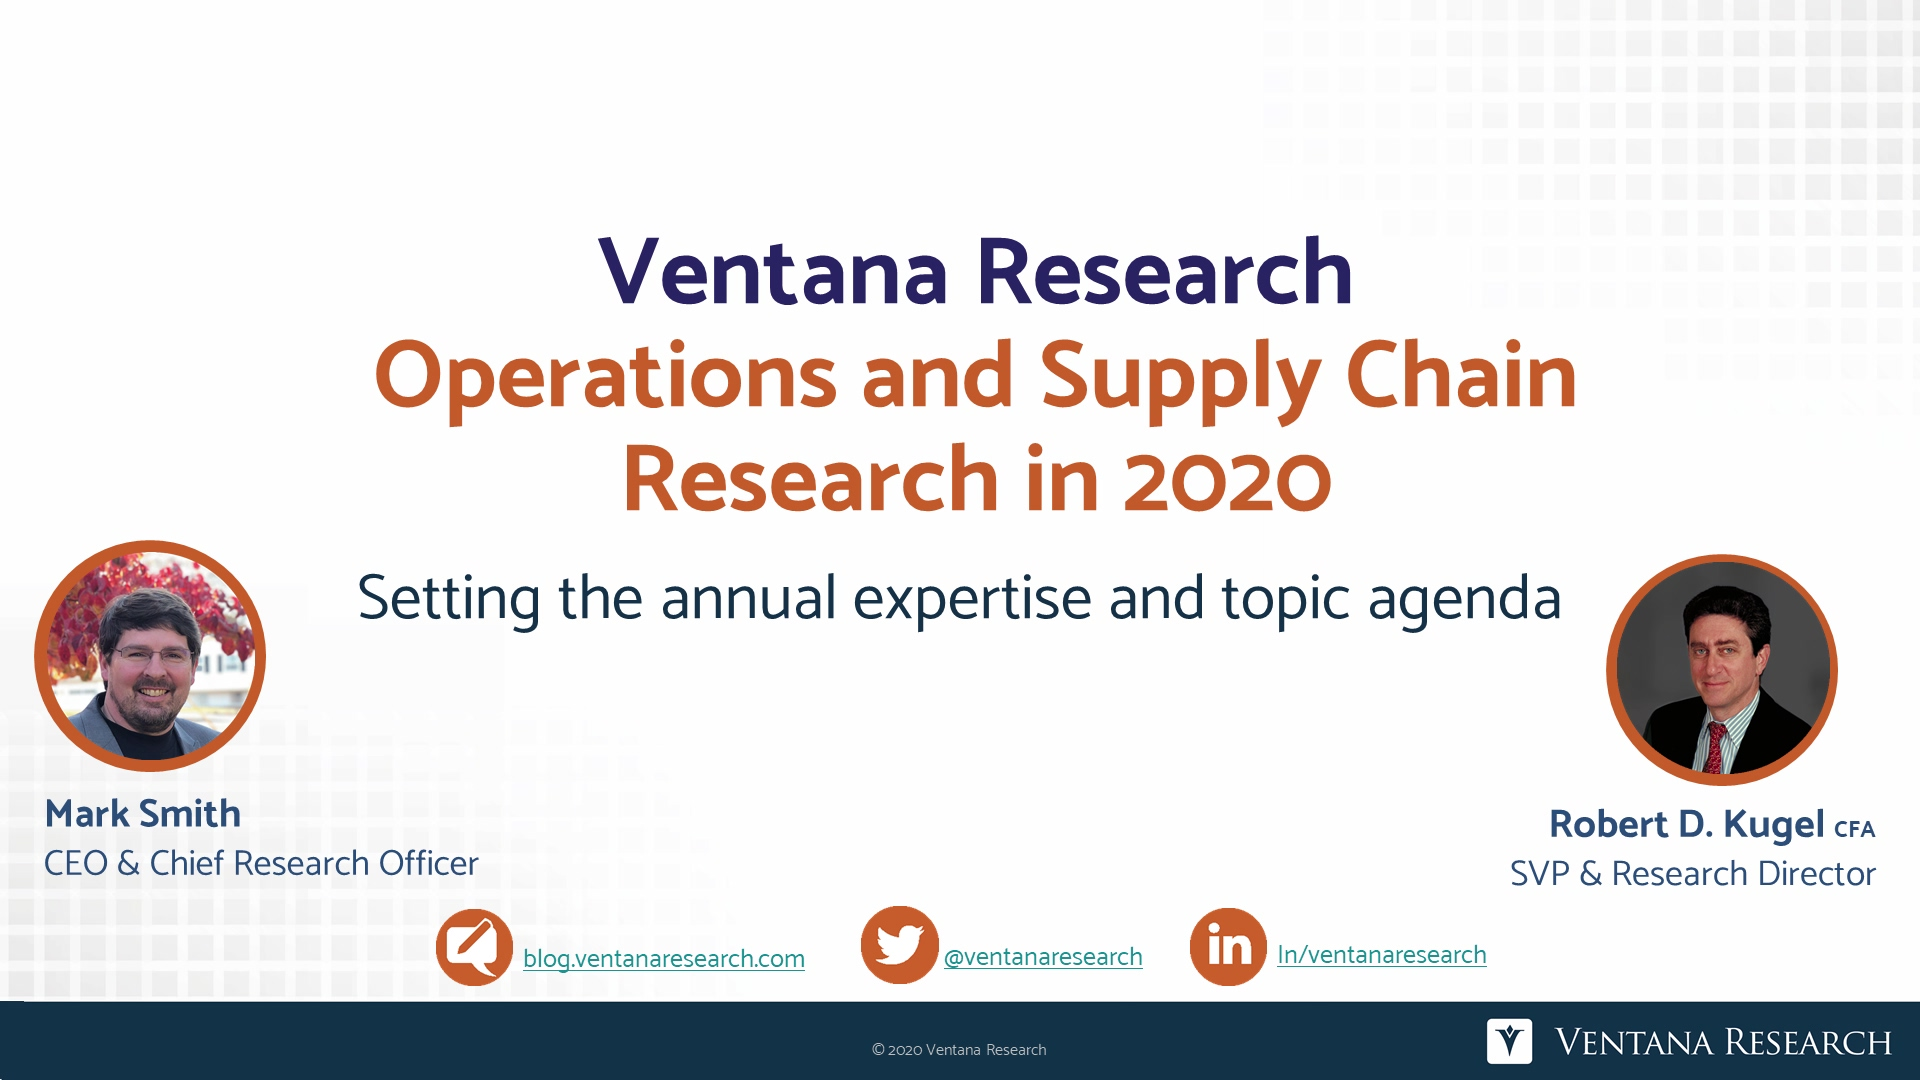 Ventana_Research_2020_Operations_and_Supply_Chain_Research_Agenda